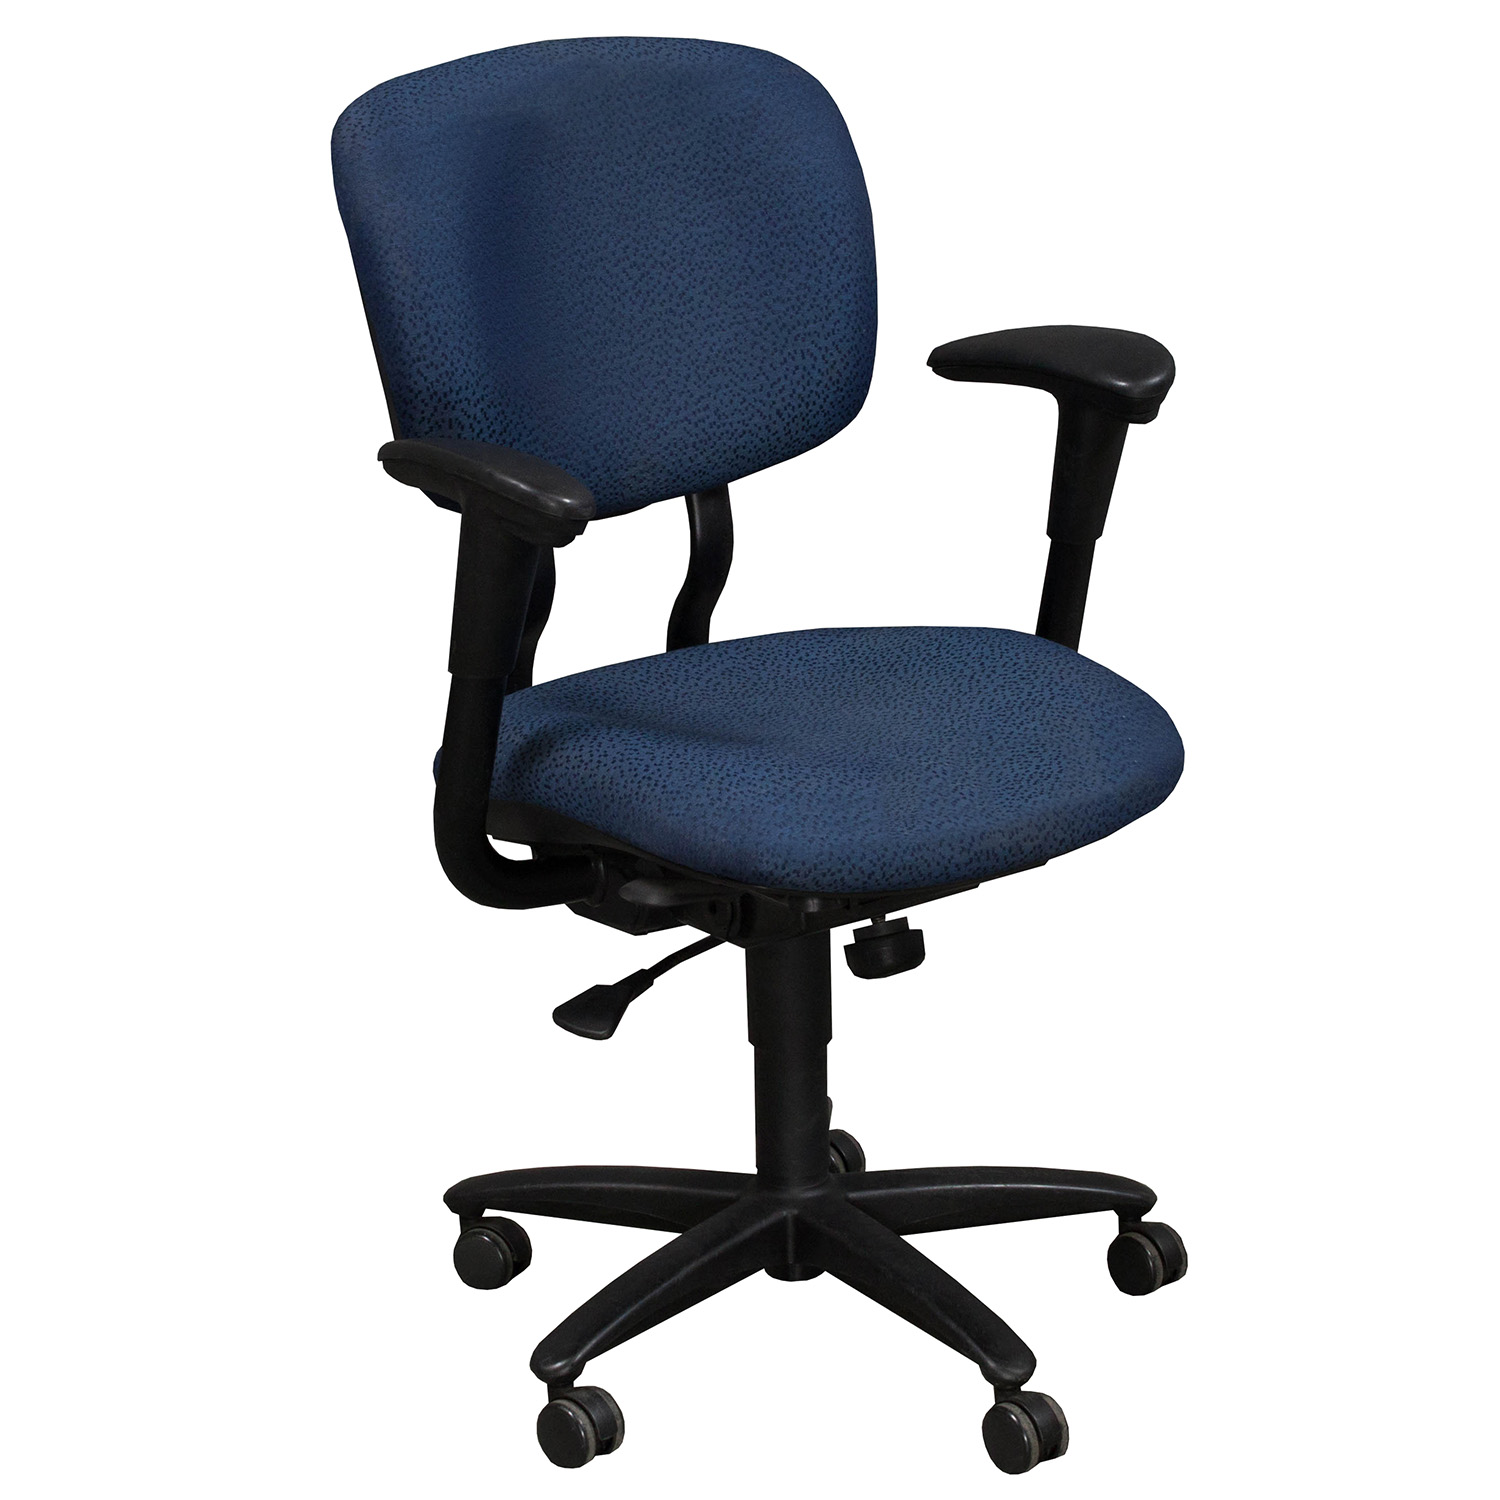 Chair Computer Haworth Improv Desk Used Task Chair Blue National